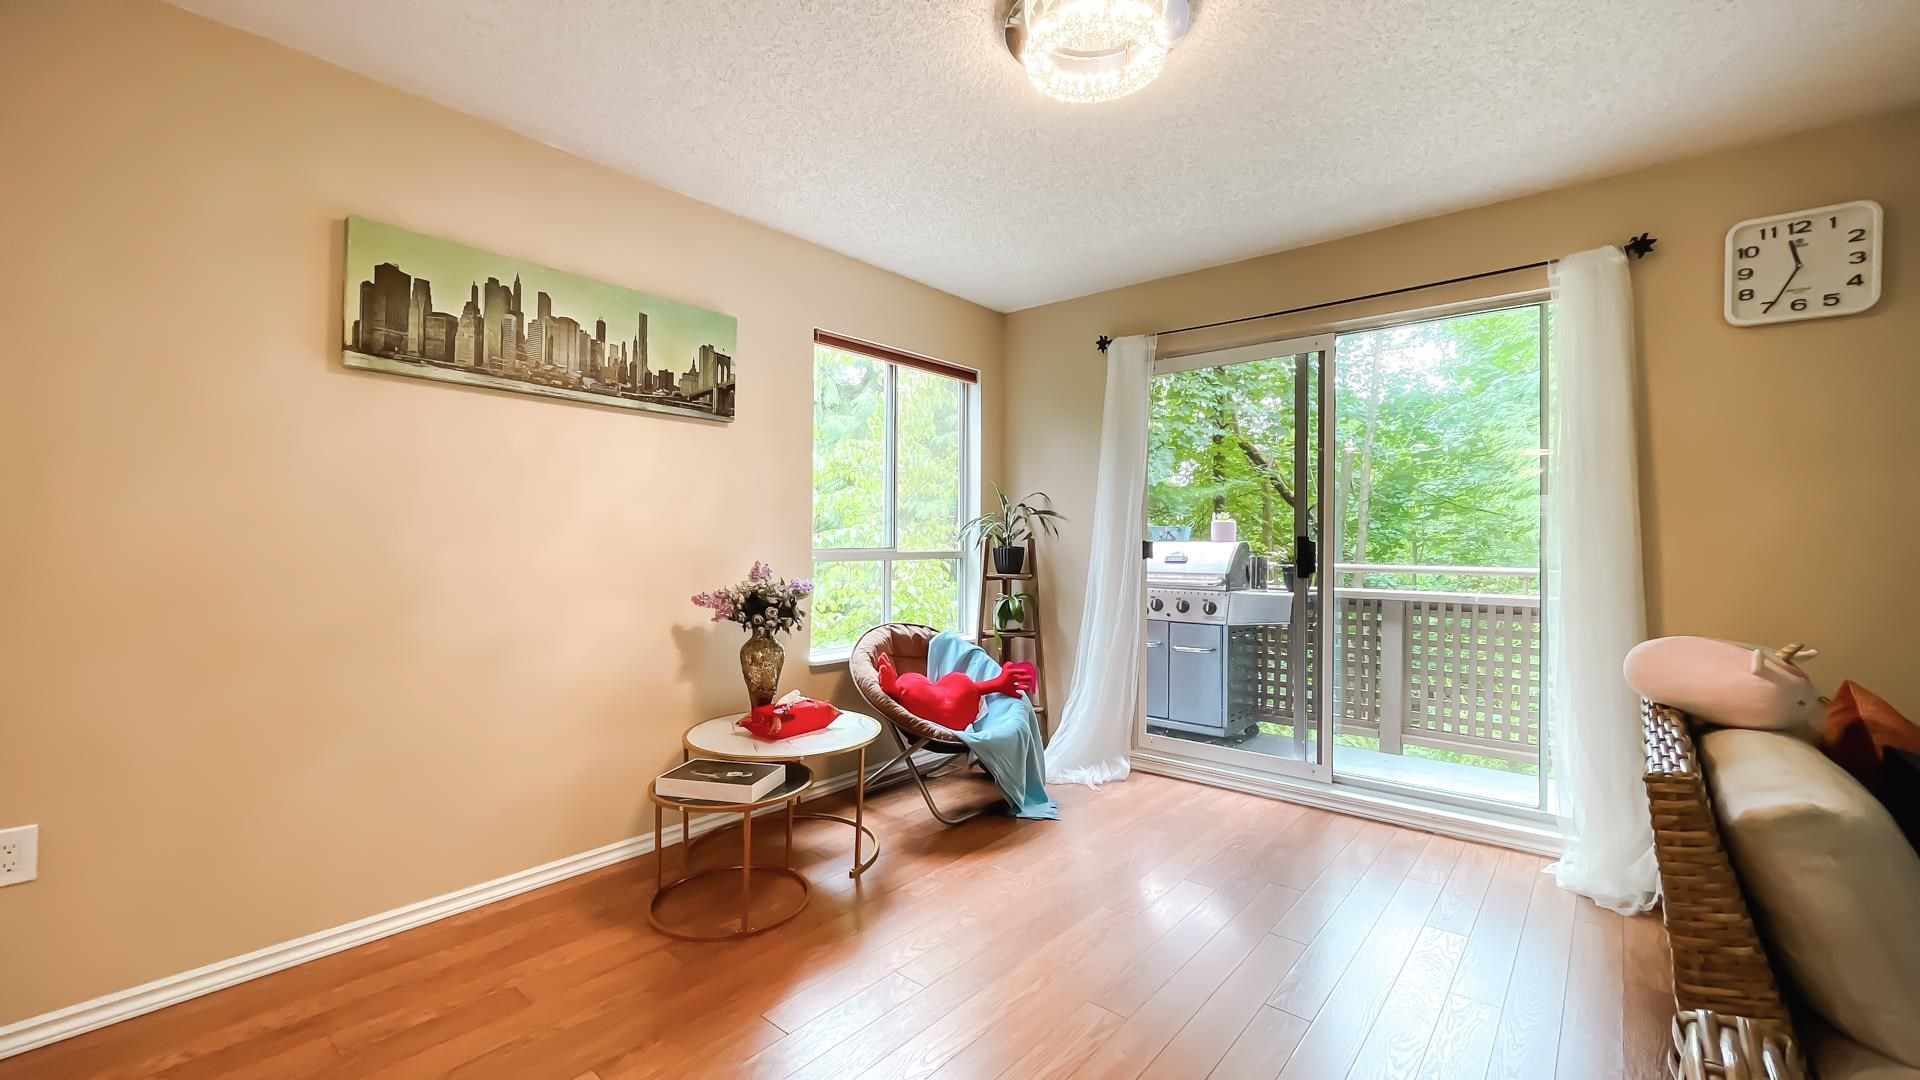 Photo 6: Photos: 66 9000 ASH GROVE CRESCENT in Burnaby: Forest Hills BN Townhouse for sale (Burnaby North)  : MLS®# R2603744